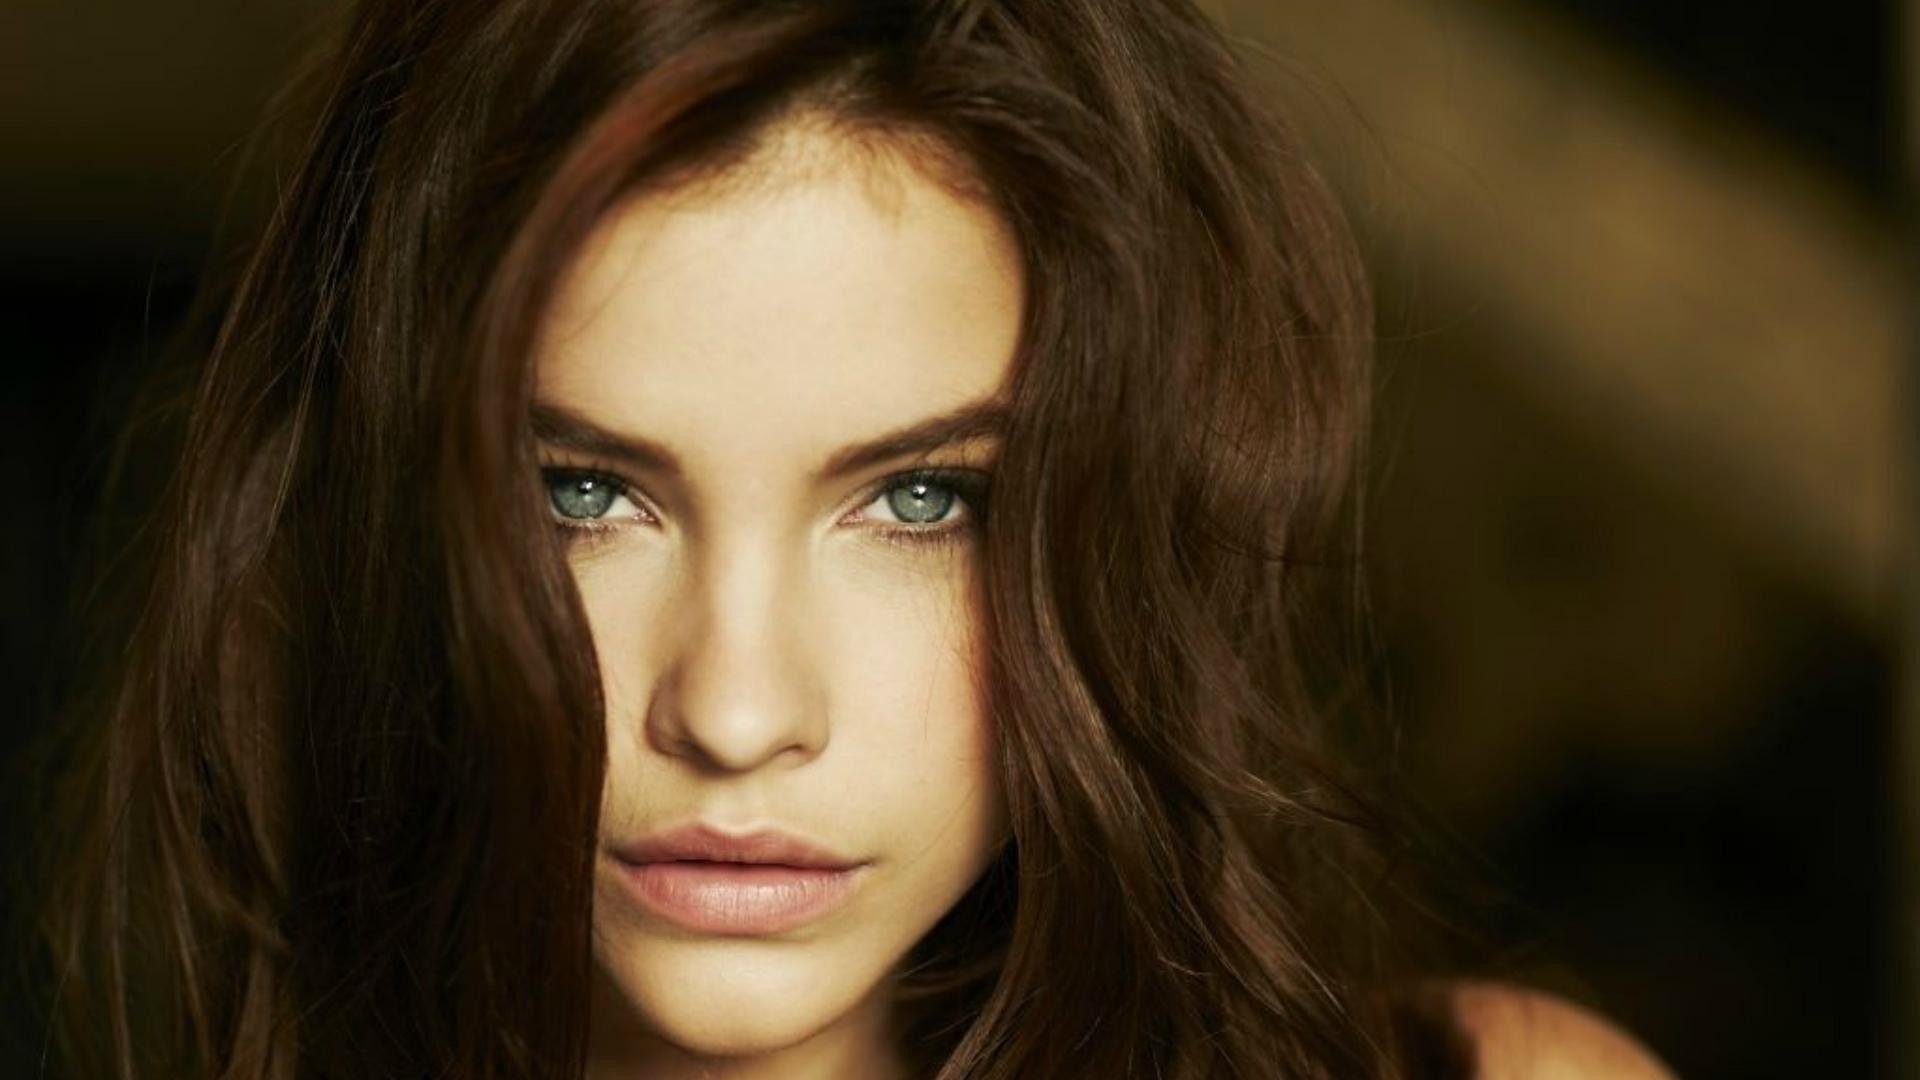 barbara palvin 14 wallpaper - photo #34